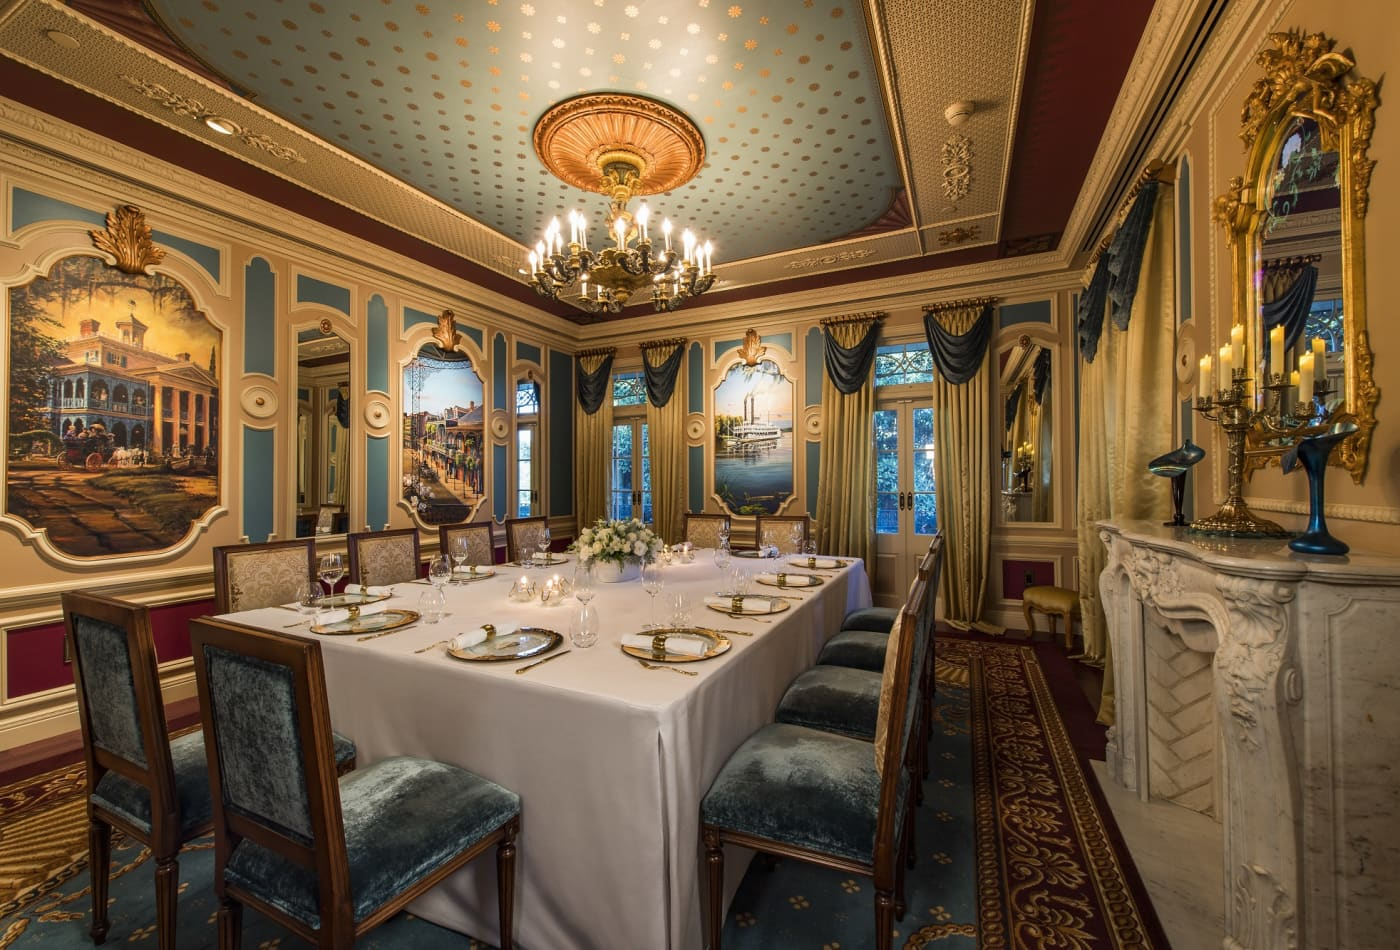 Photos Secret Disneyland Dinner Costs 15 000,Kids Wardrobe Organization